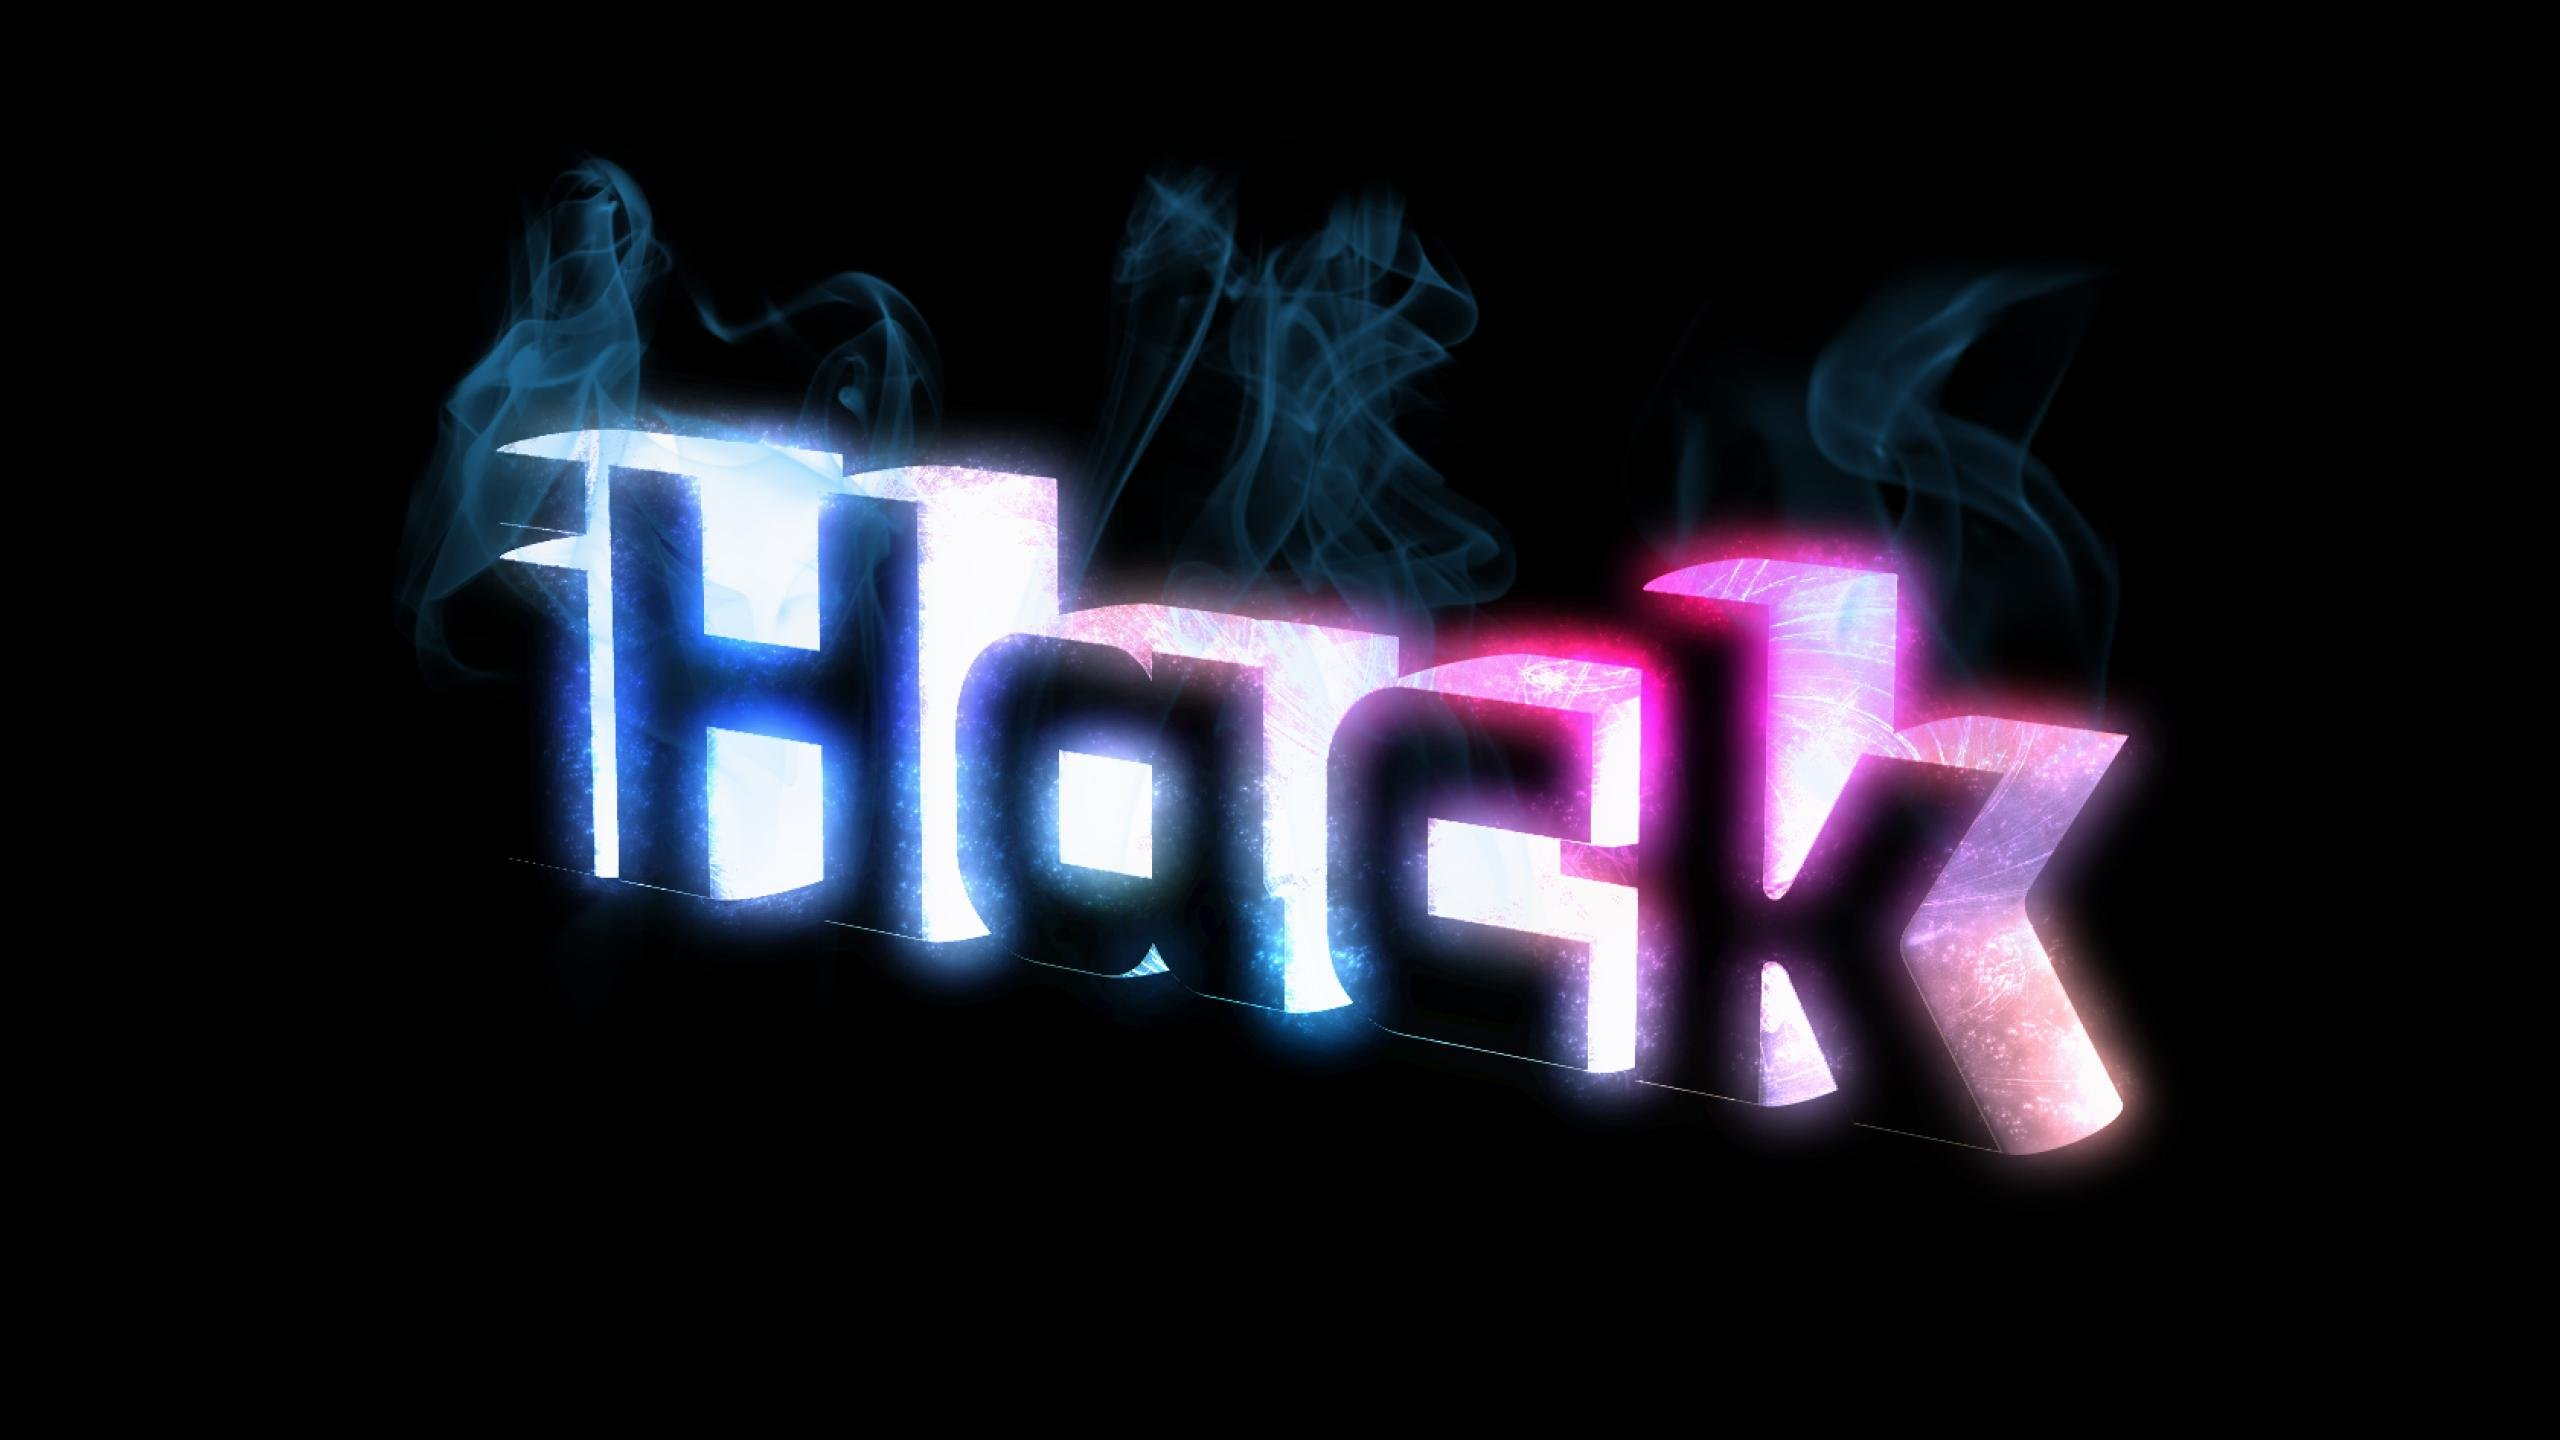 Abstracto Texto Hack Wallpaper 2560x1440 816092 Wallpaperup